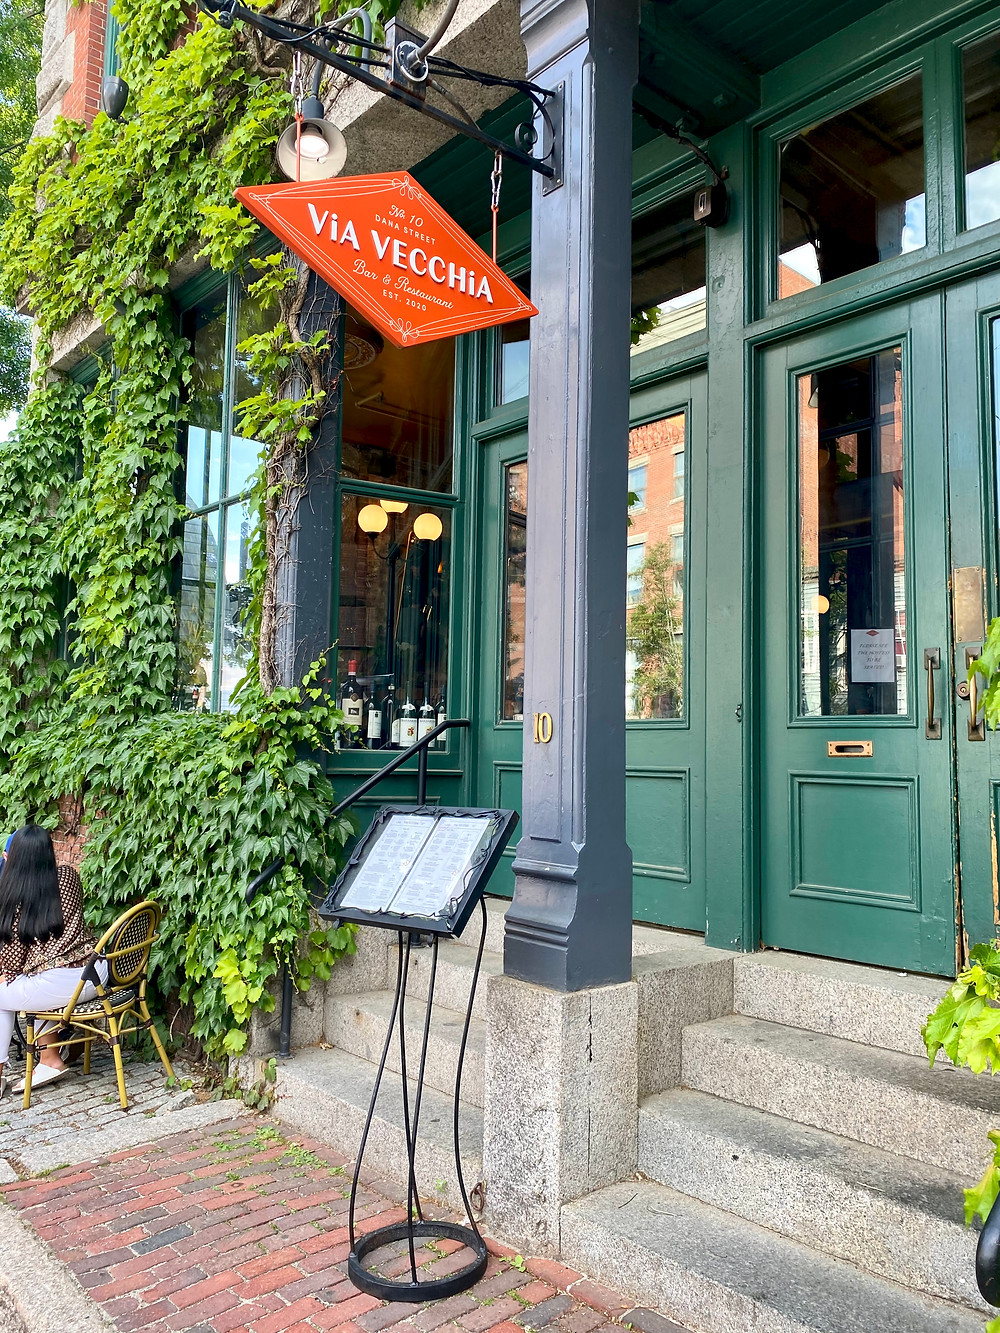 Via Vecchio, an authentic Italian restaurant covered in ivy